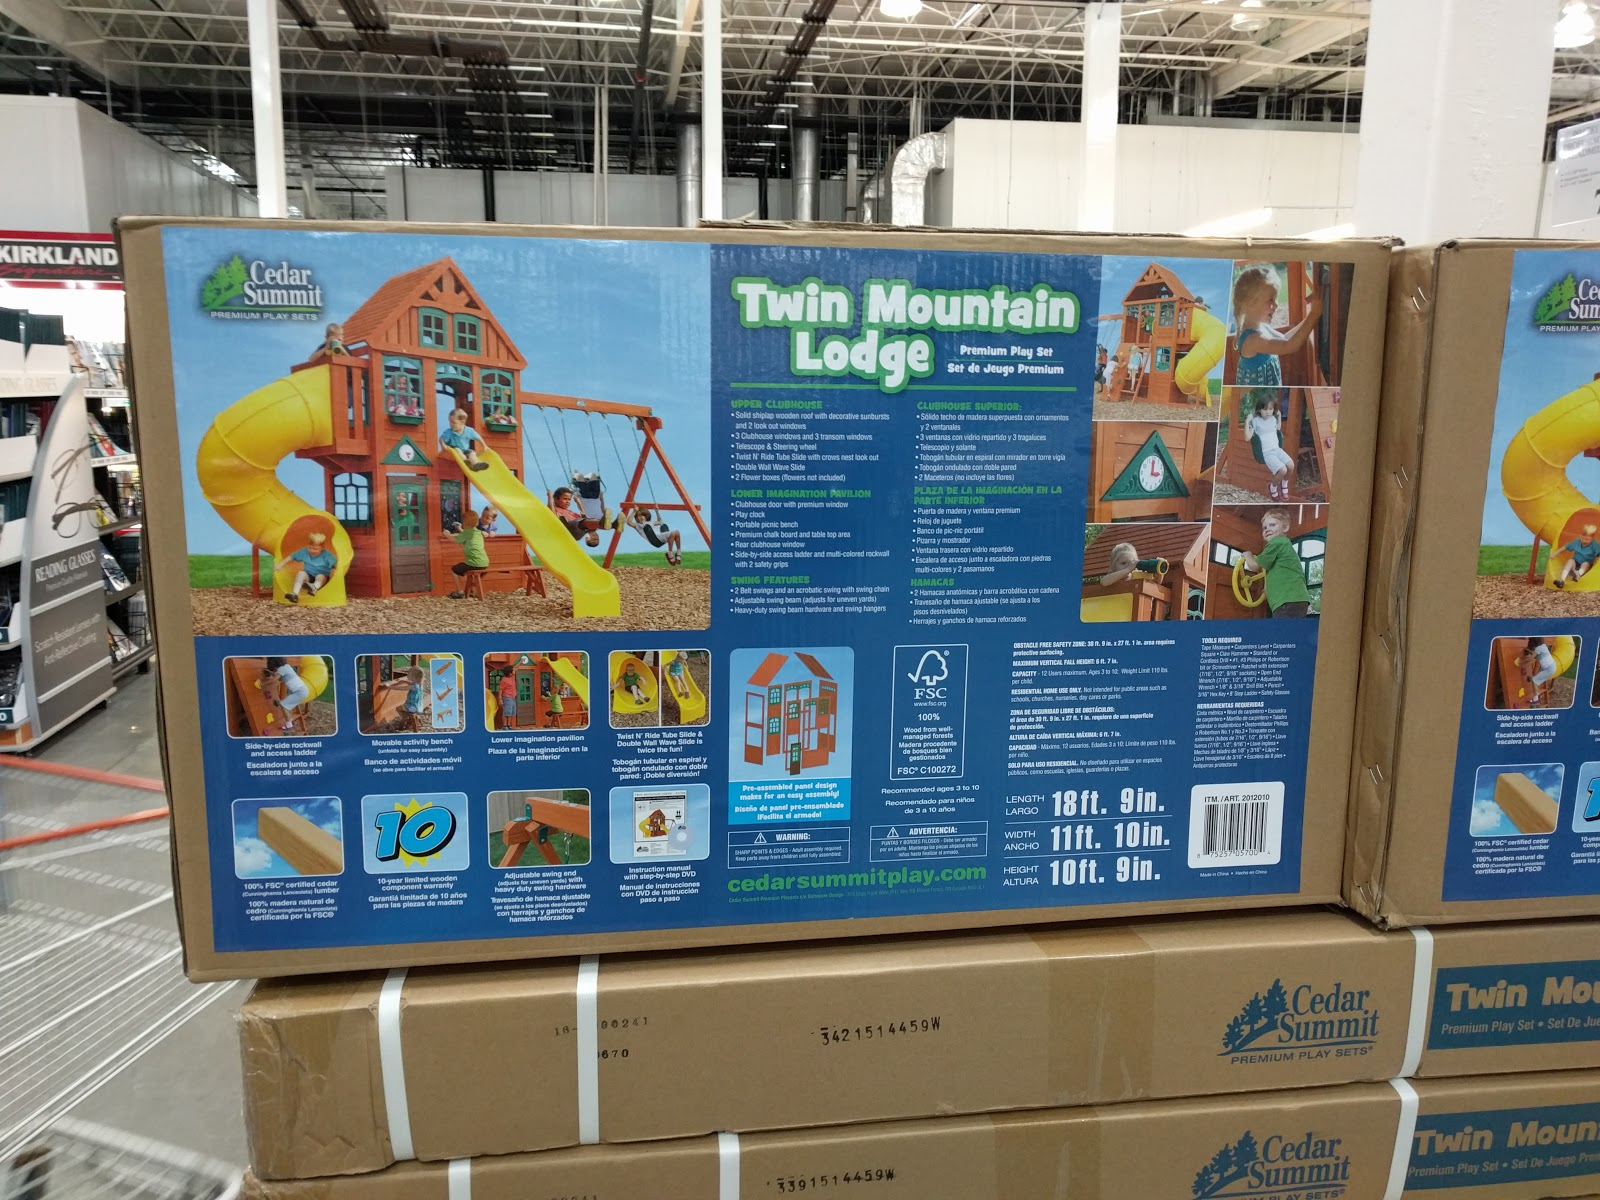 twin mountain lodge 2 slide playset from costco